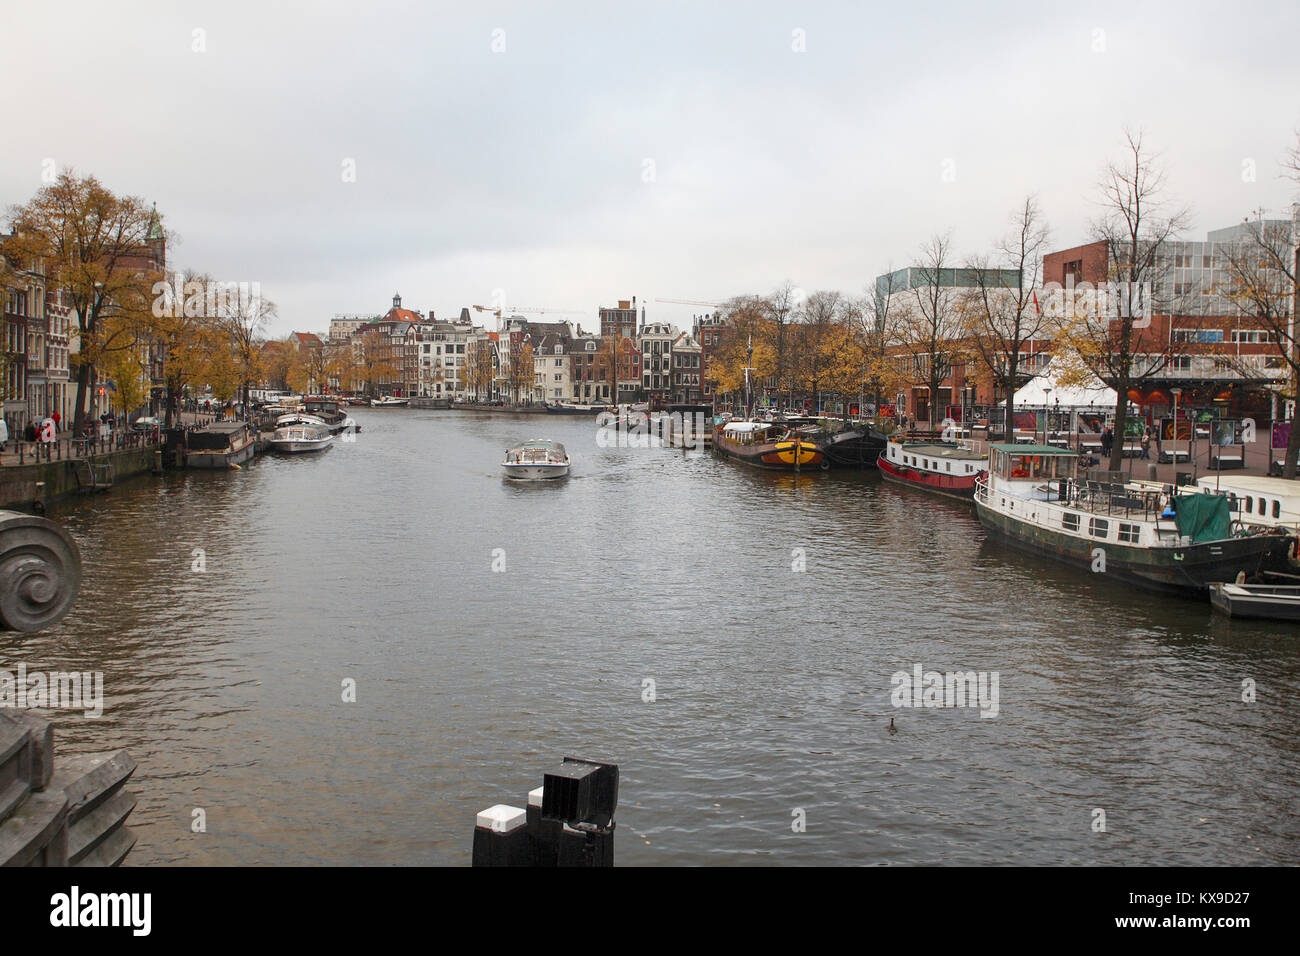 One of the canals with houseboats at the quays 2007 - Stock Image